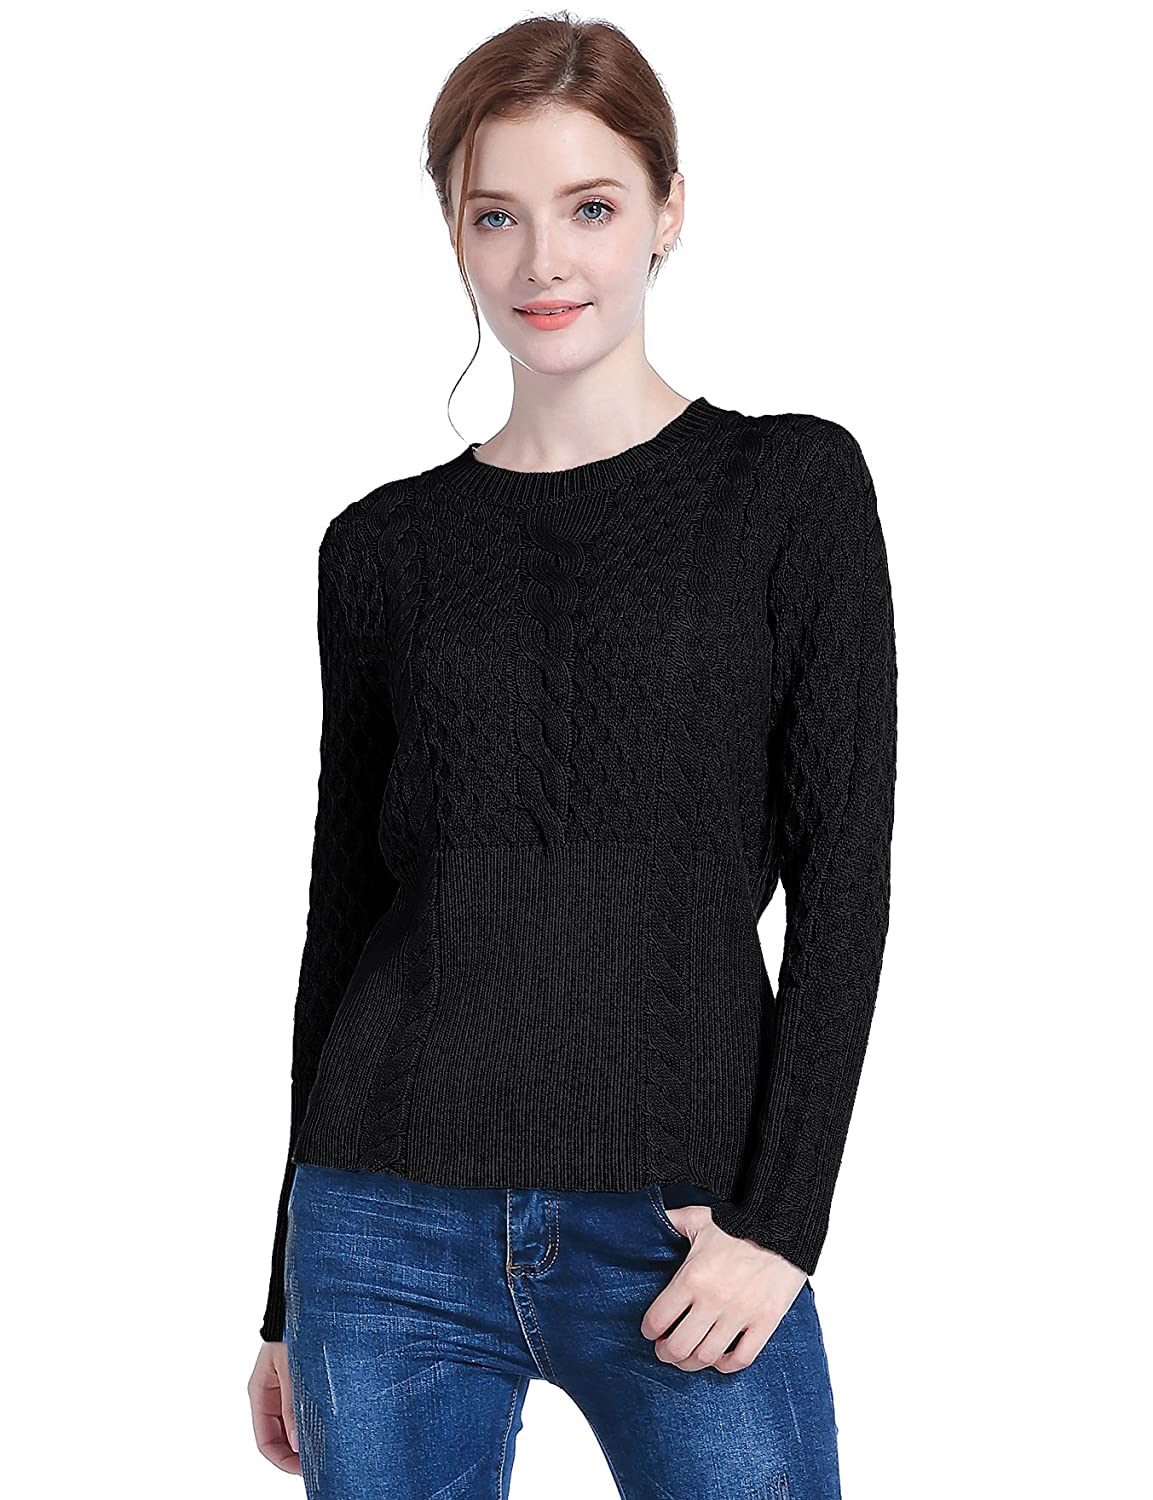 85681a2ed2 v28 Women s Girl Crew Neck Knit Ribbed Long Sleeve Jumper Pullover Sweater